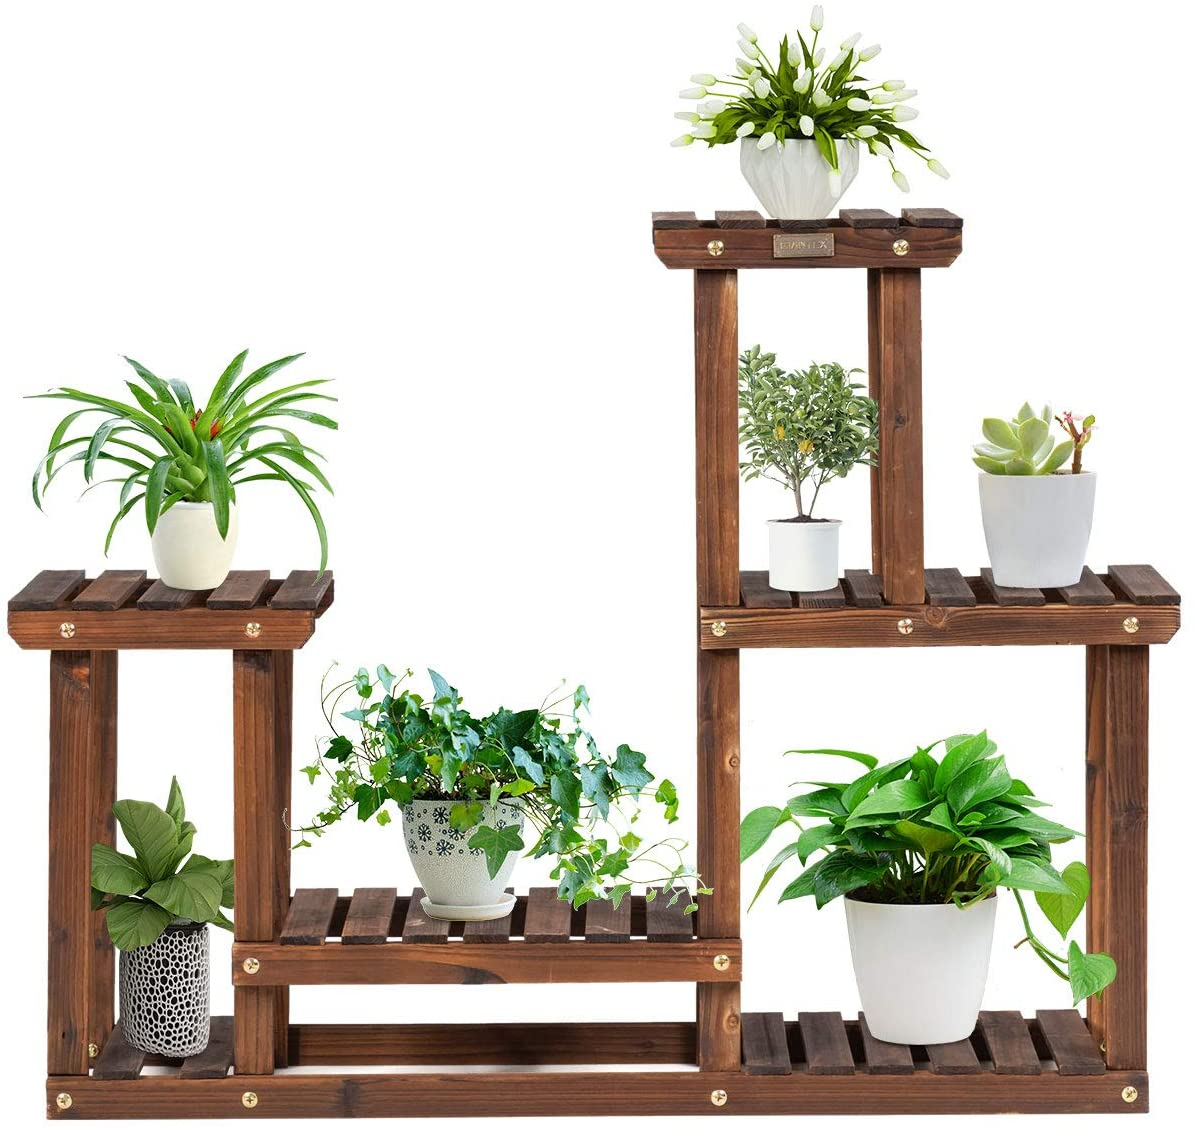 Giantex Wood Plant Stand, 4 Tier Multiple Flower Pot Holder Display Shelf for Home Patio Garden flower shop, Outdoor Indoor Higher and Lower Plant Display Rack (4 Tiers Accommodate for 7-9 Flowerpots)